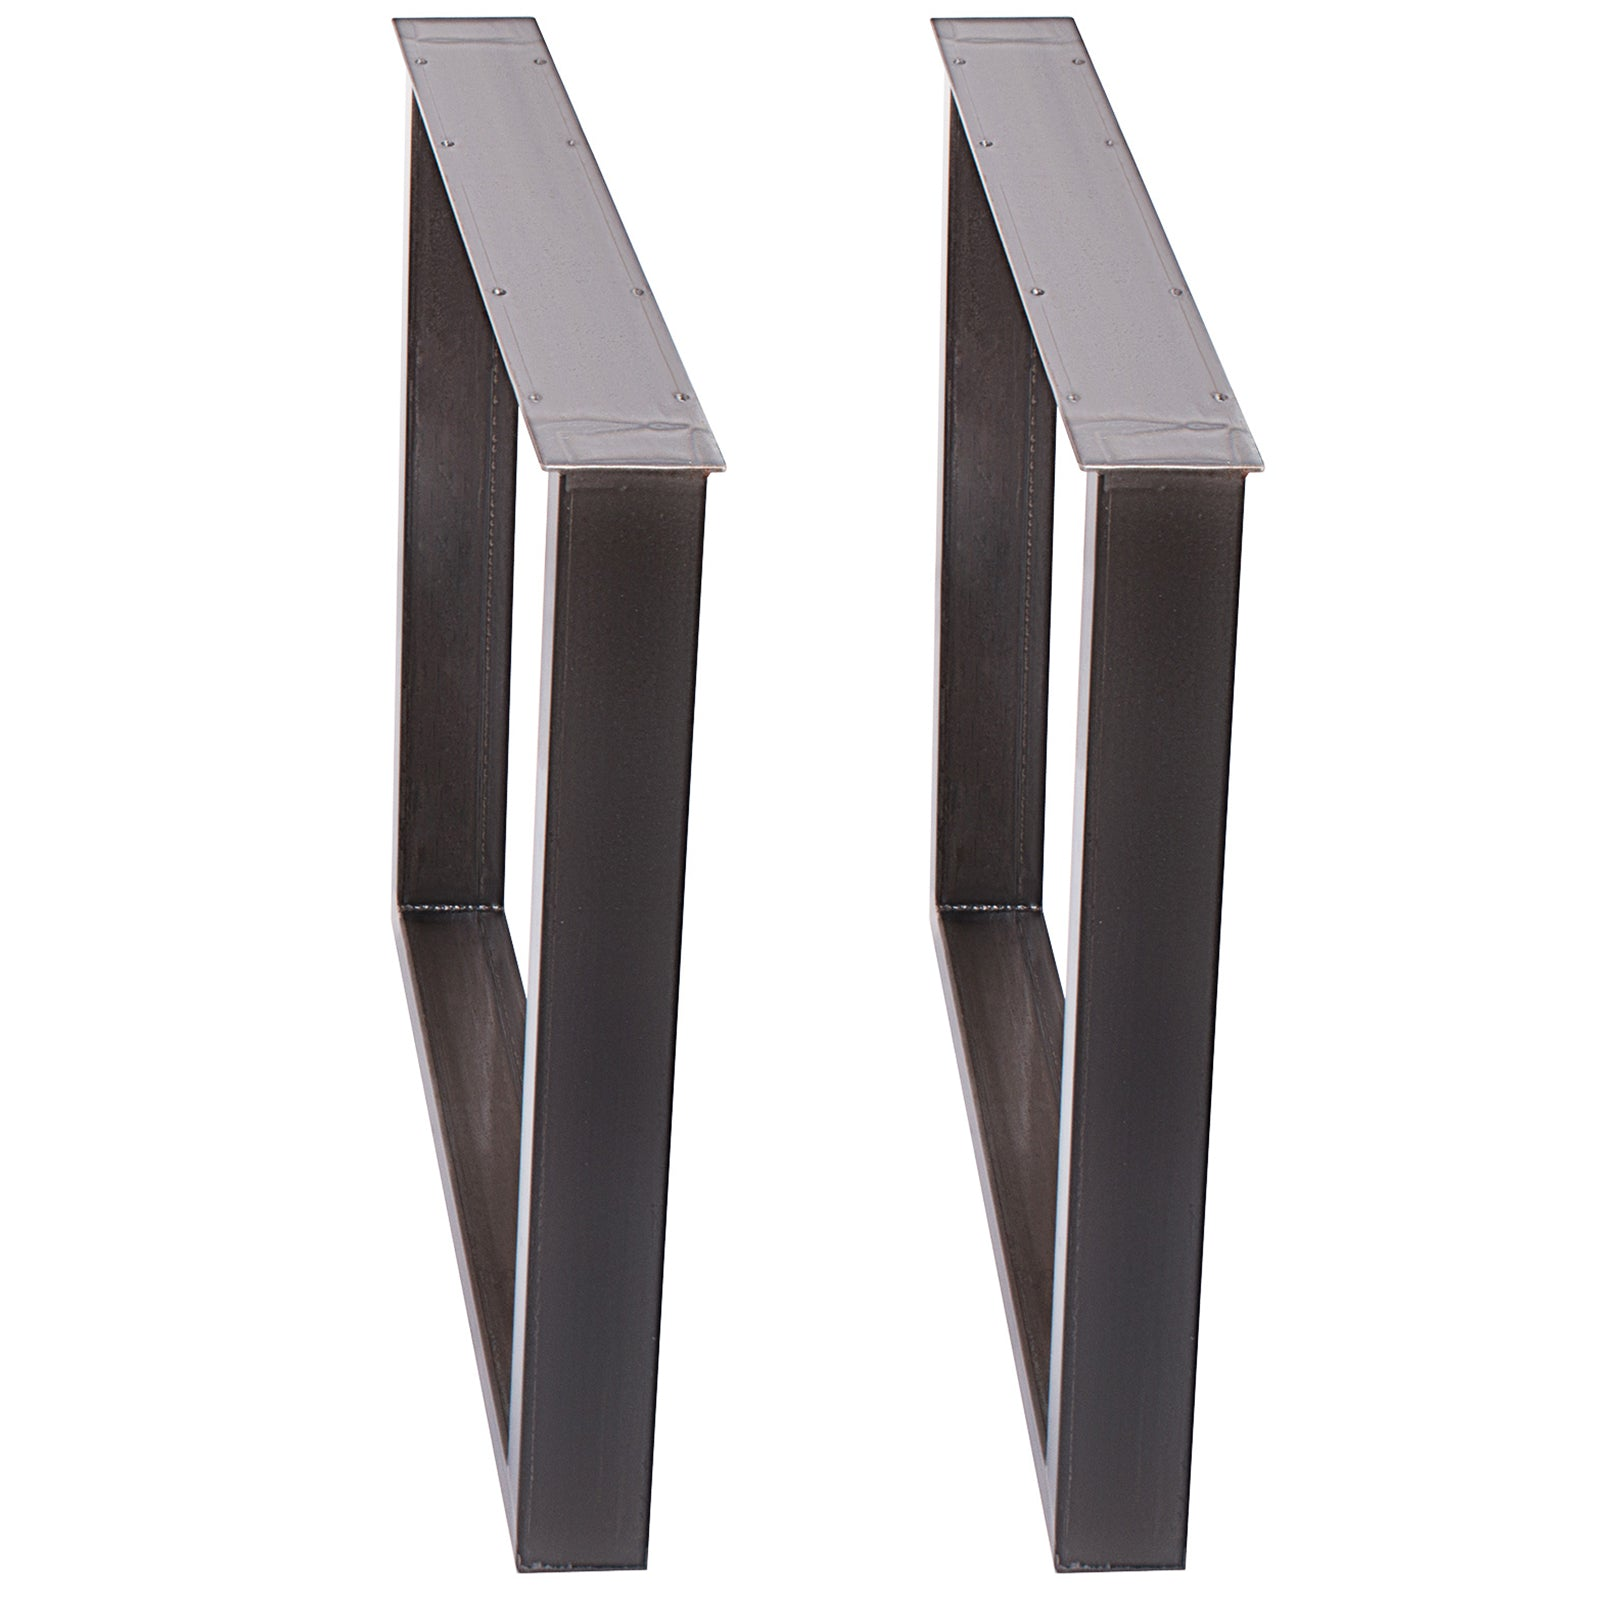 2x Table Legs Box Section Clear Coat 60 X 72 Cm Dinning Table Support Handmade